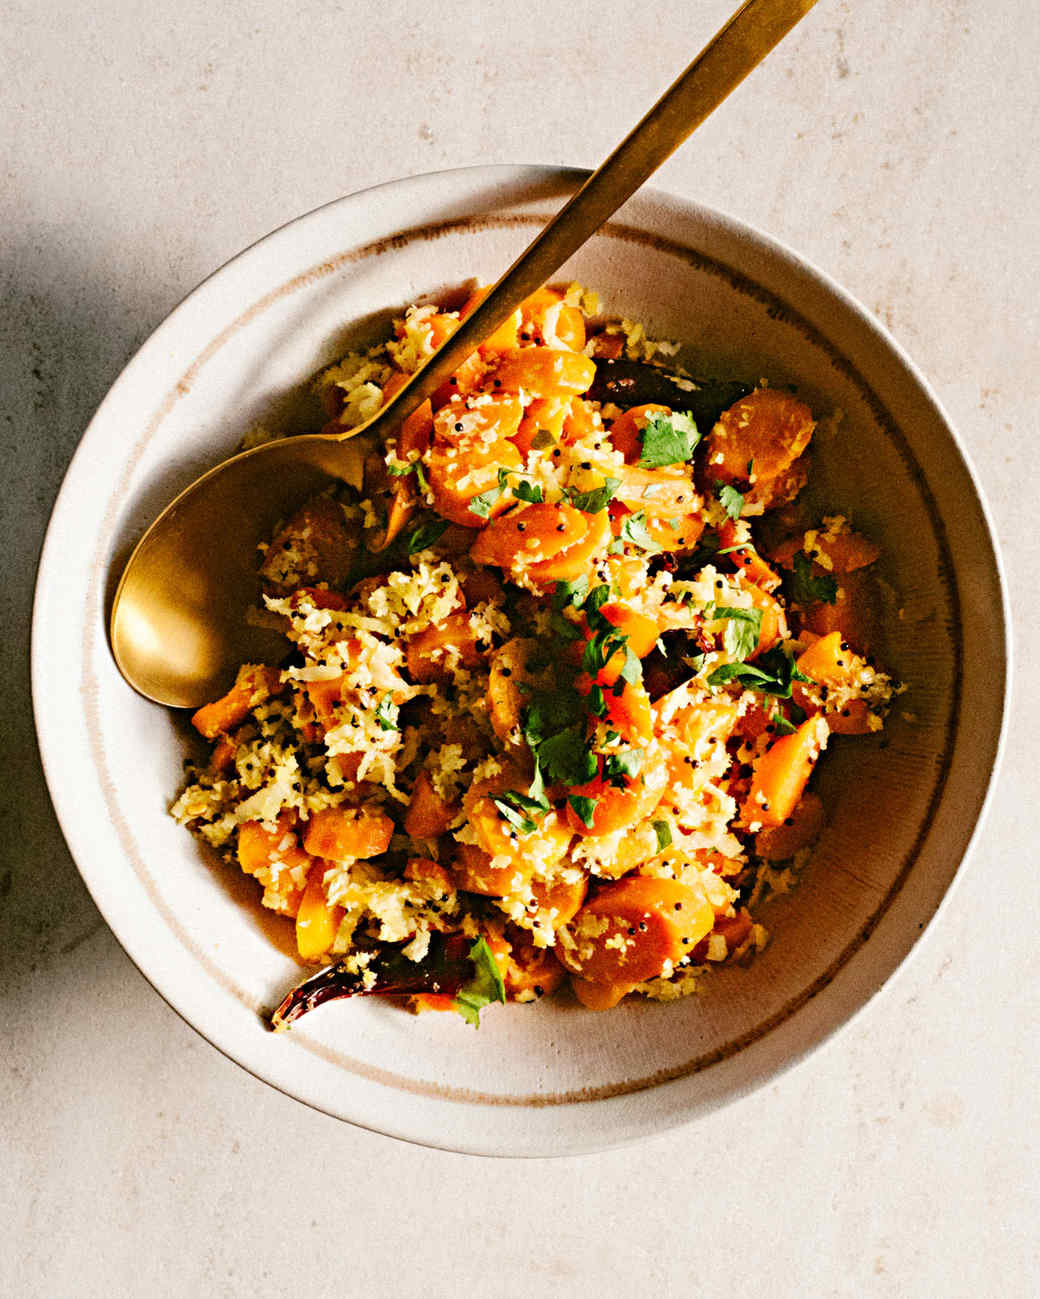 stir fried carrots with coconut